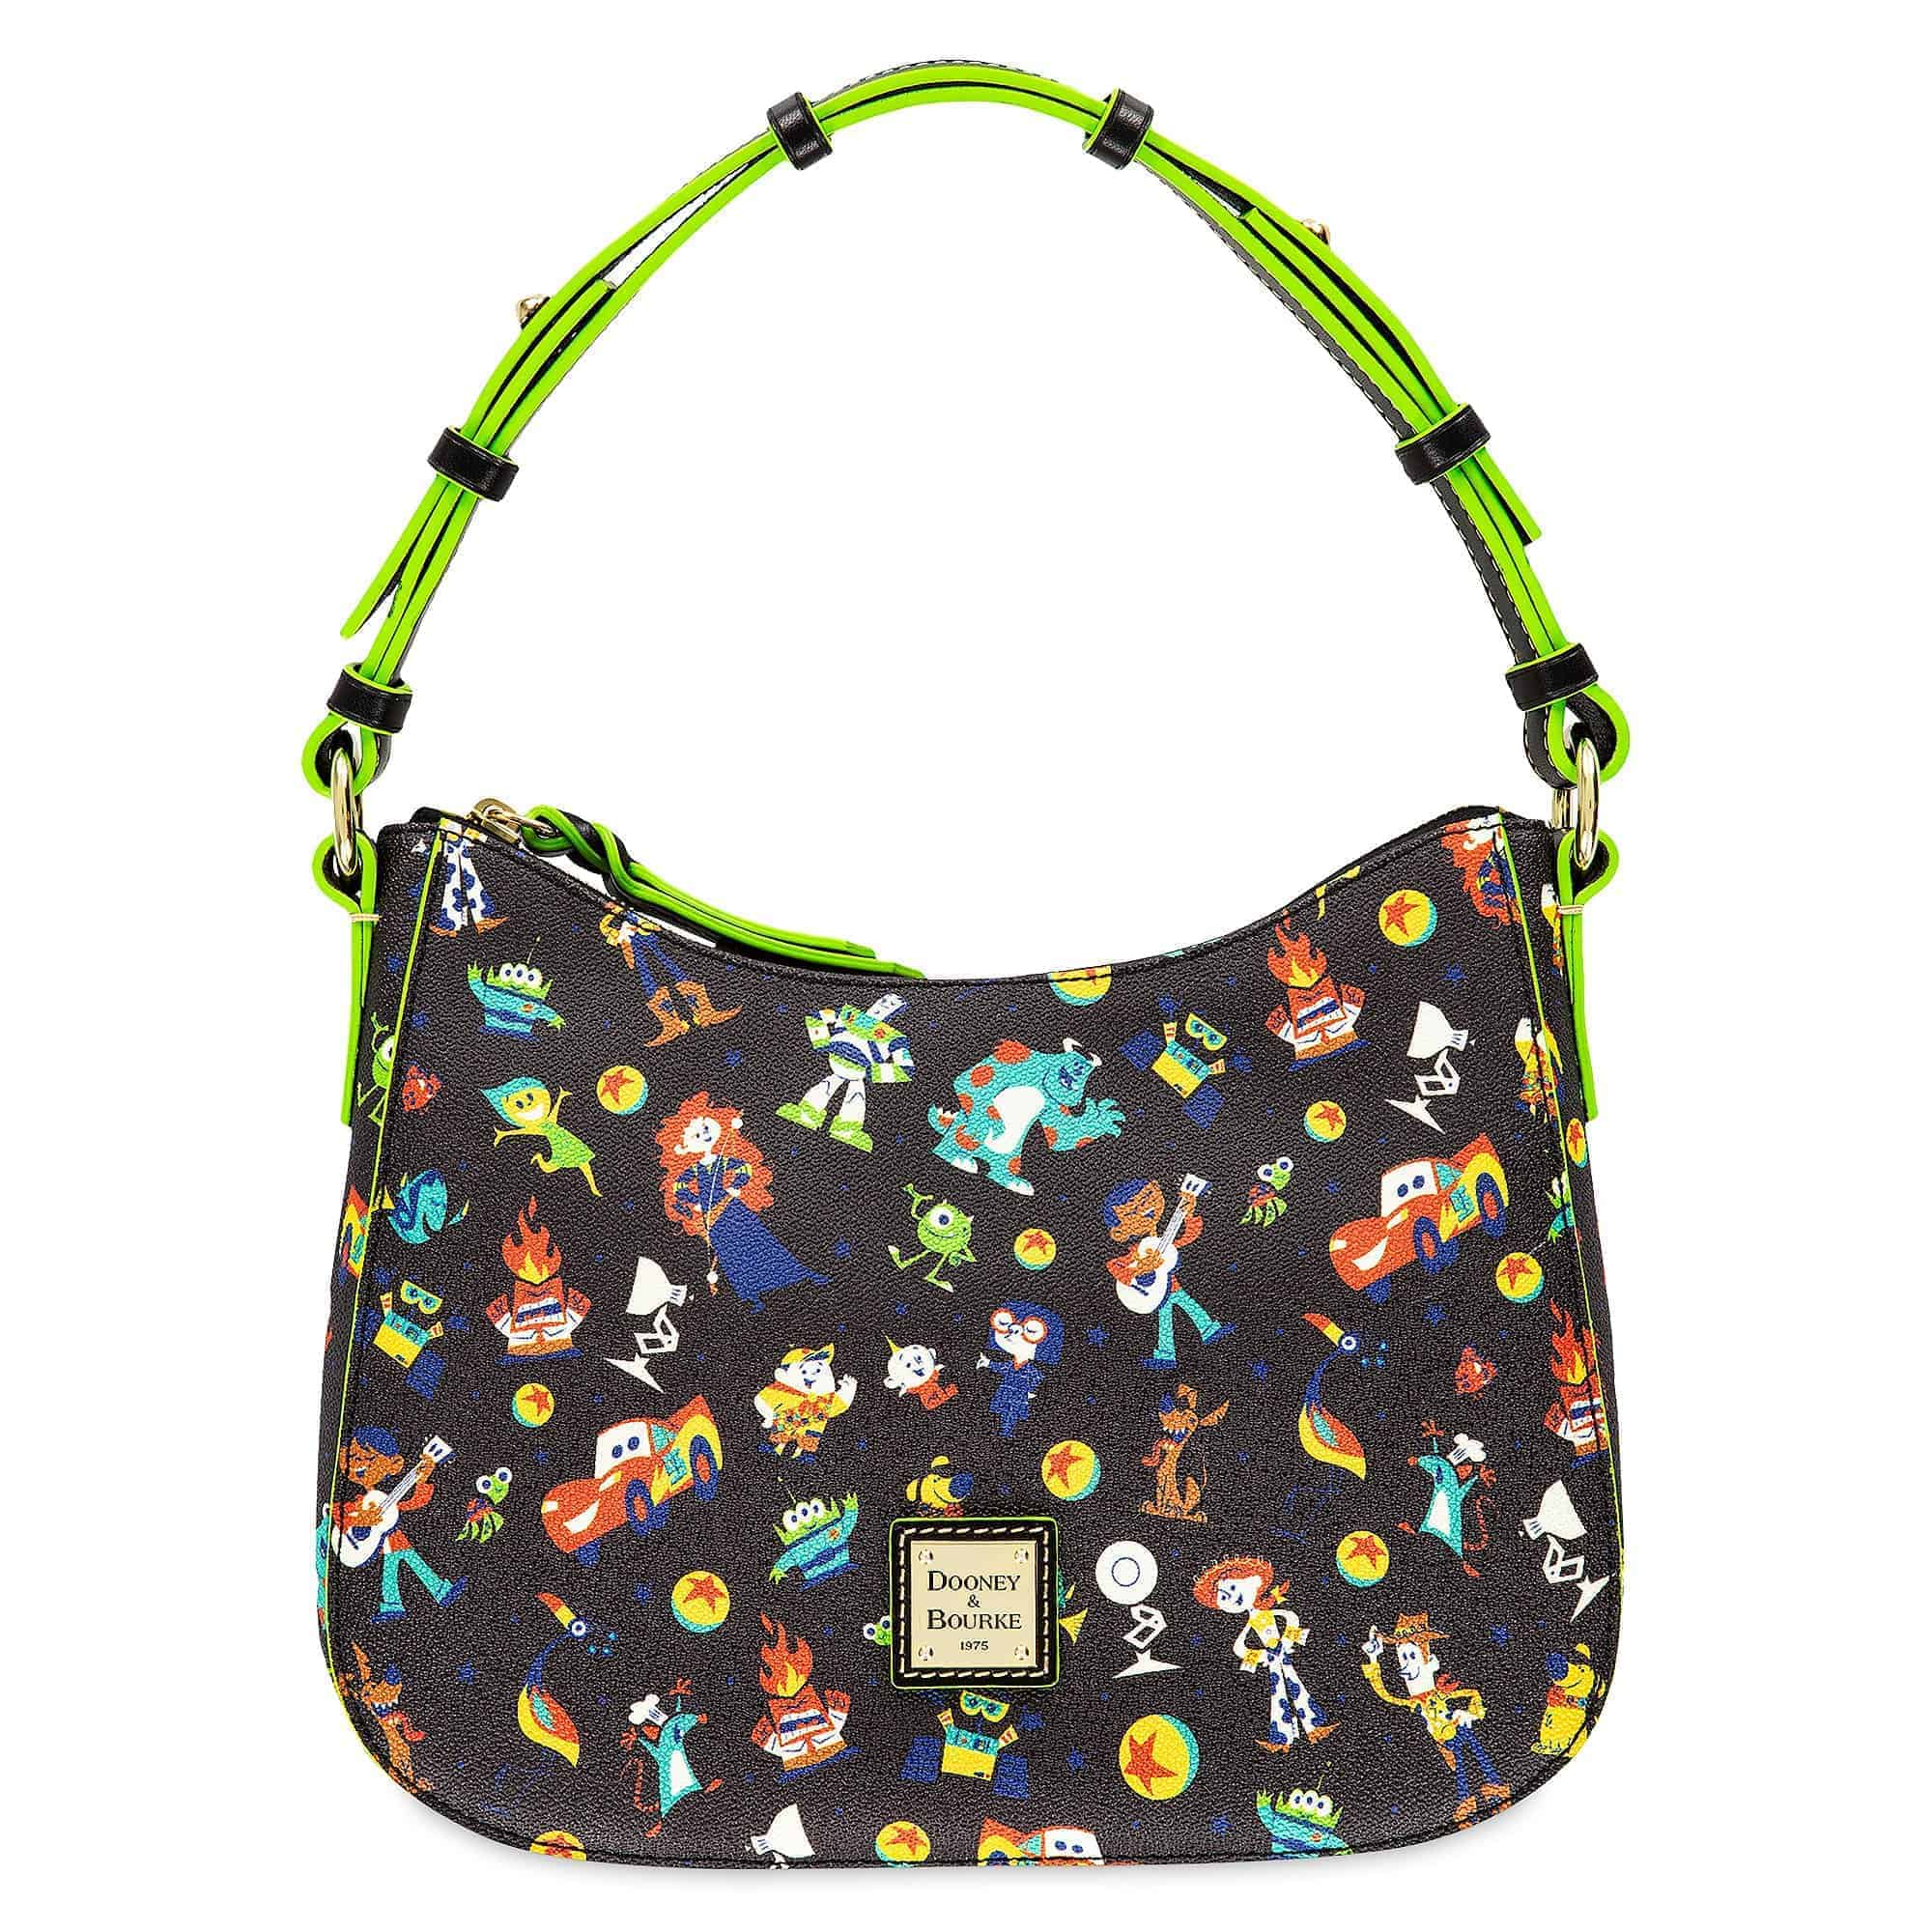 Pixar Hobo Bag by Dooney & Bourke